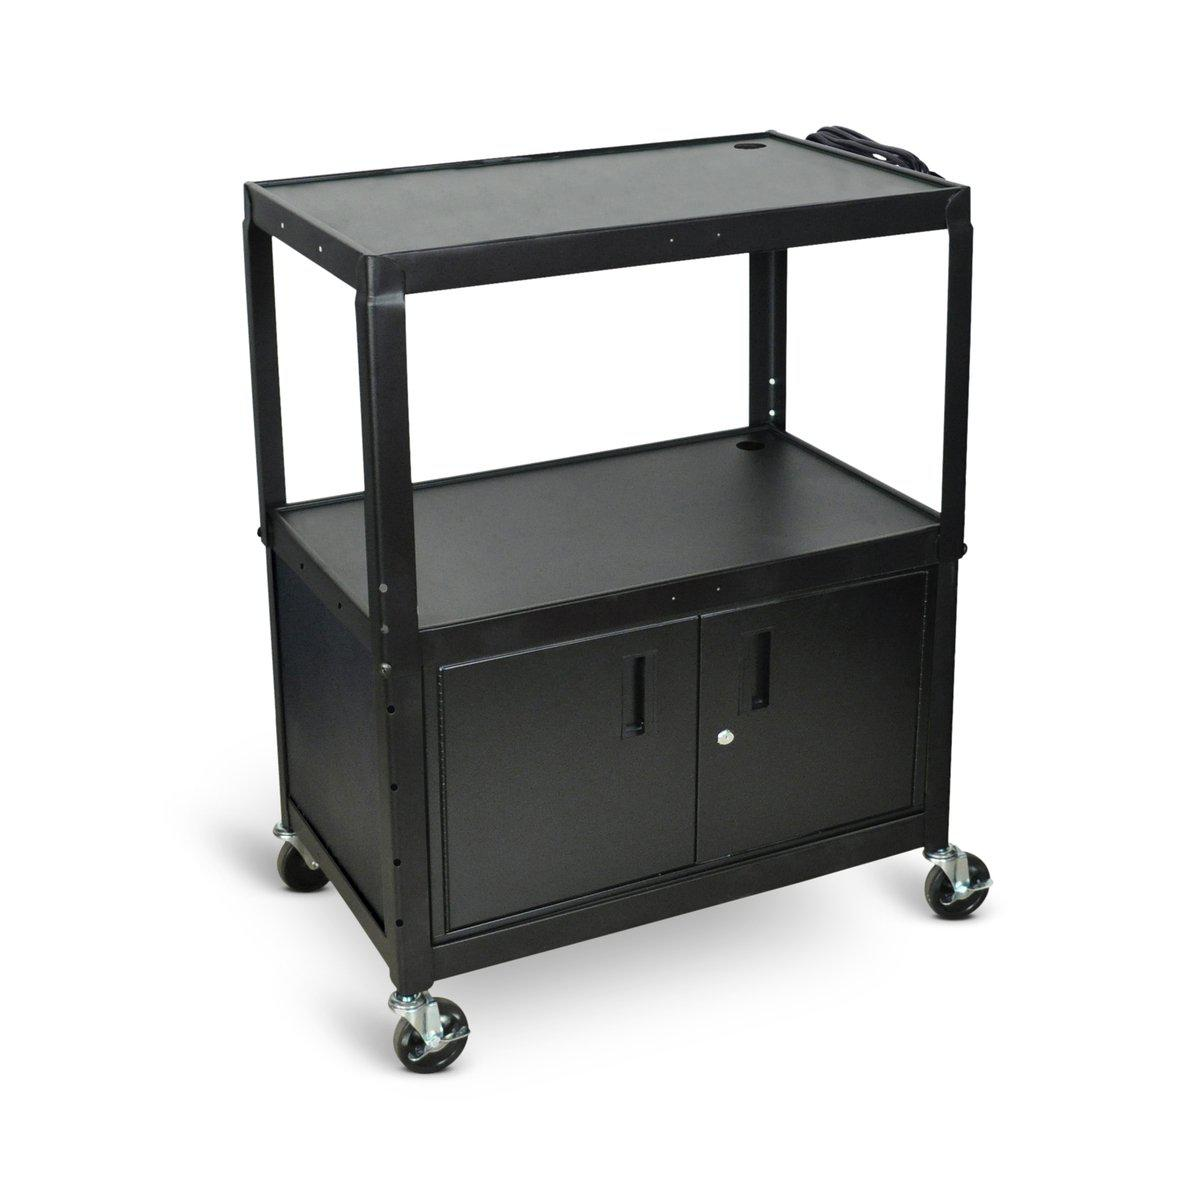 Extra-Large Adjustable-Height Steel AV Cart with Cabinet